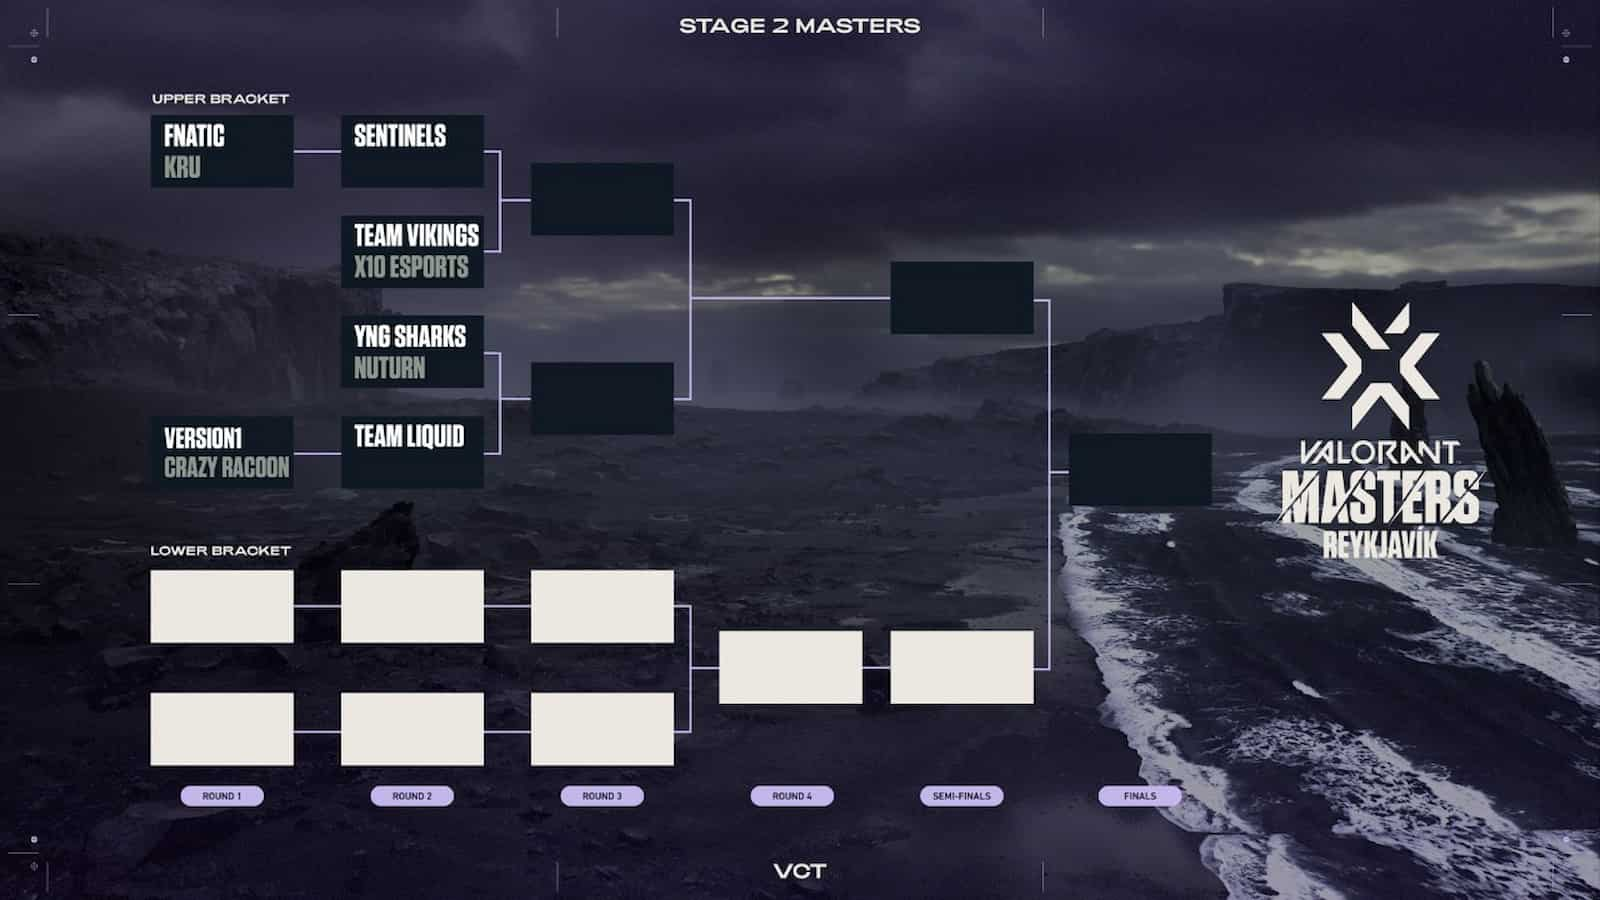 VCT Stage 2 Masters Iceland